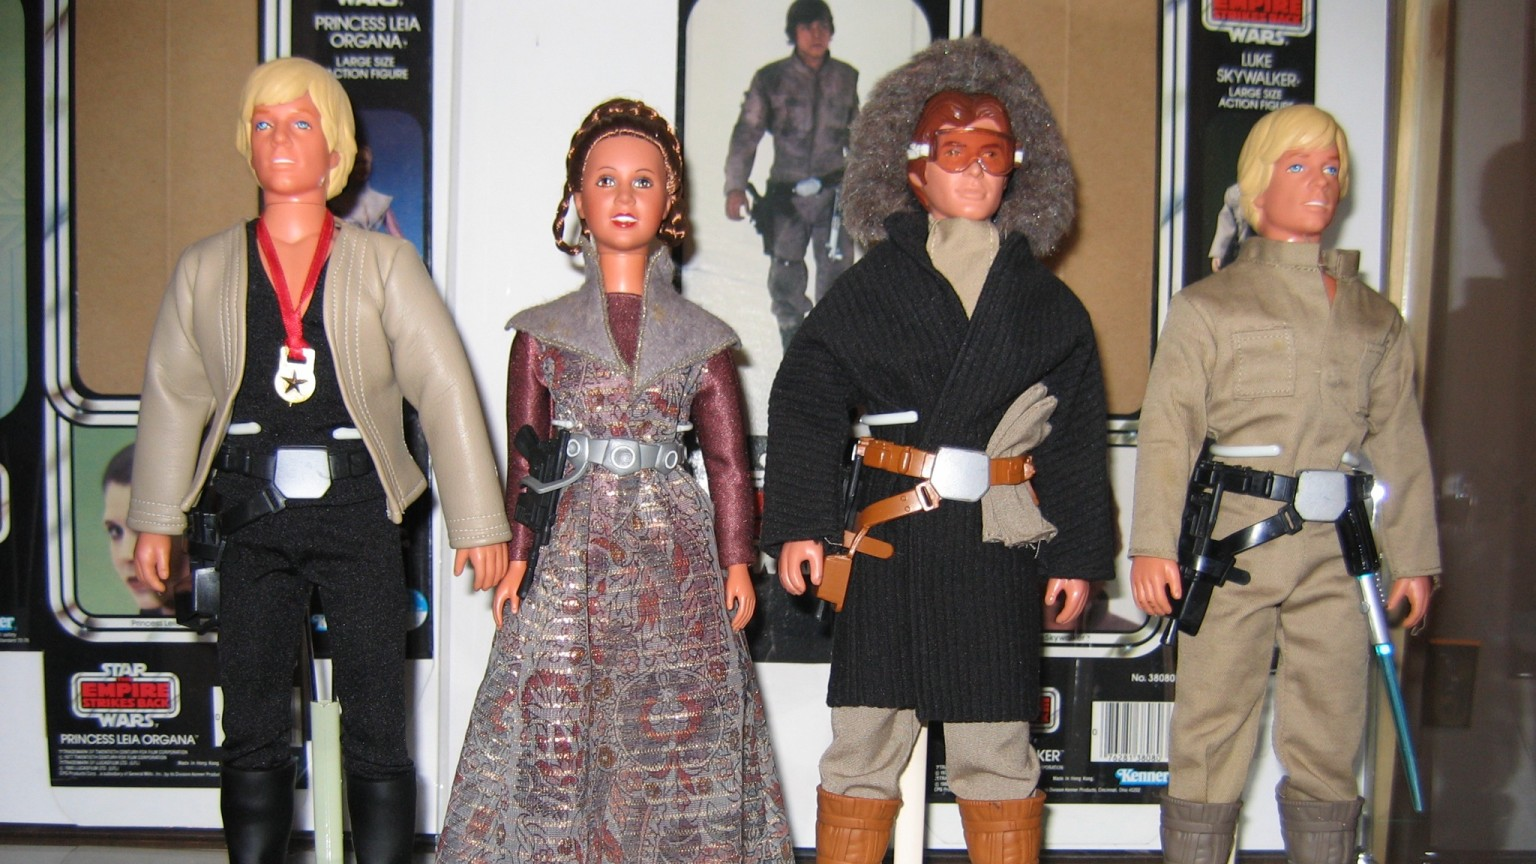 Kenner's Unreleased Large Size Action Figures